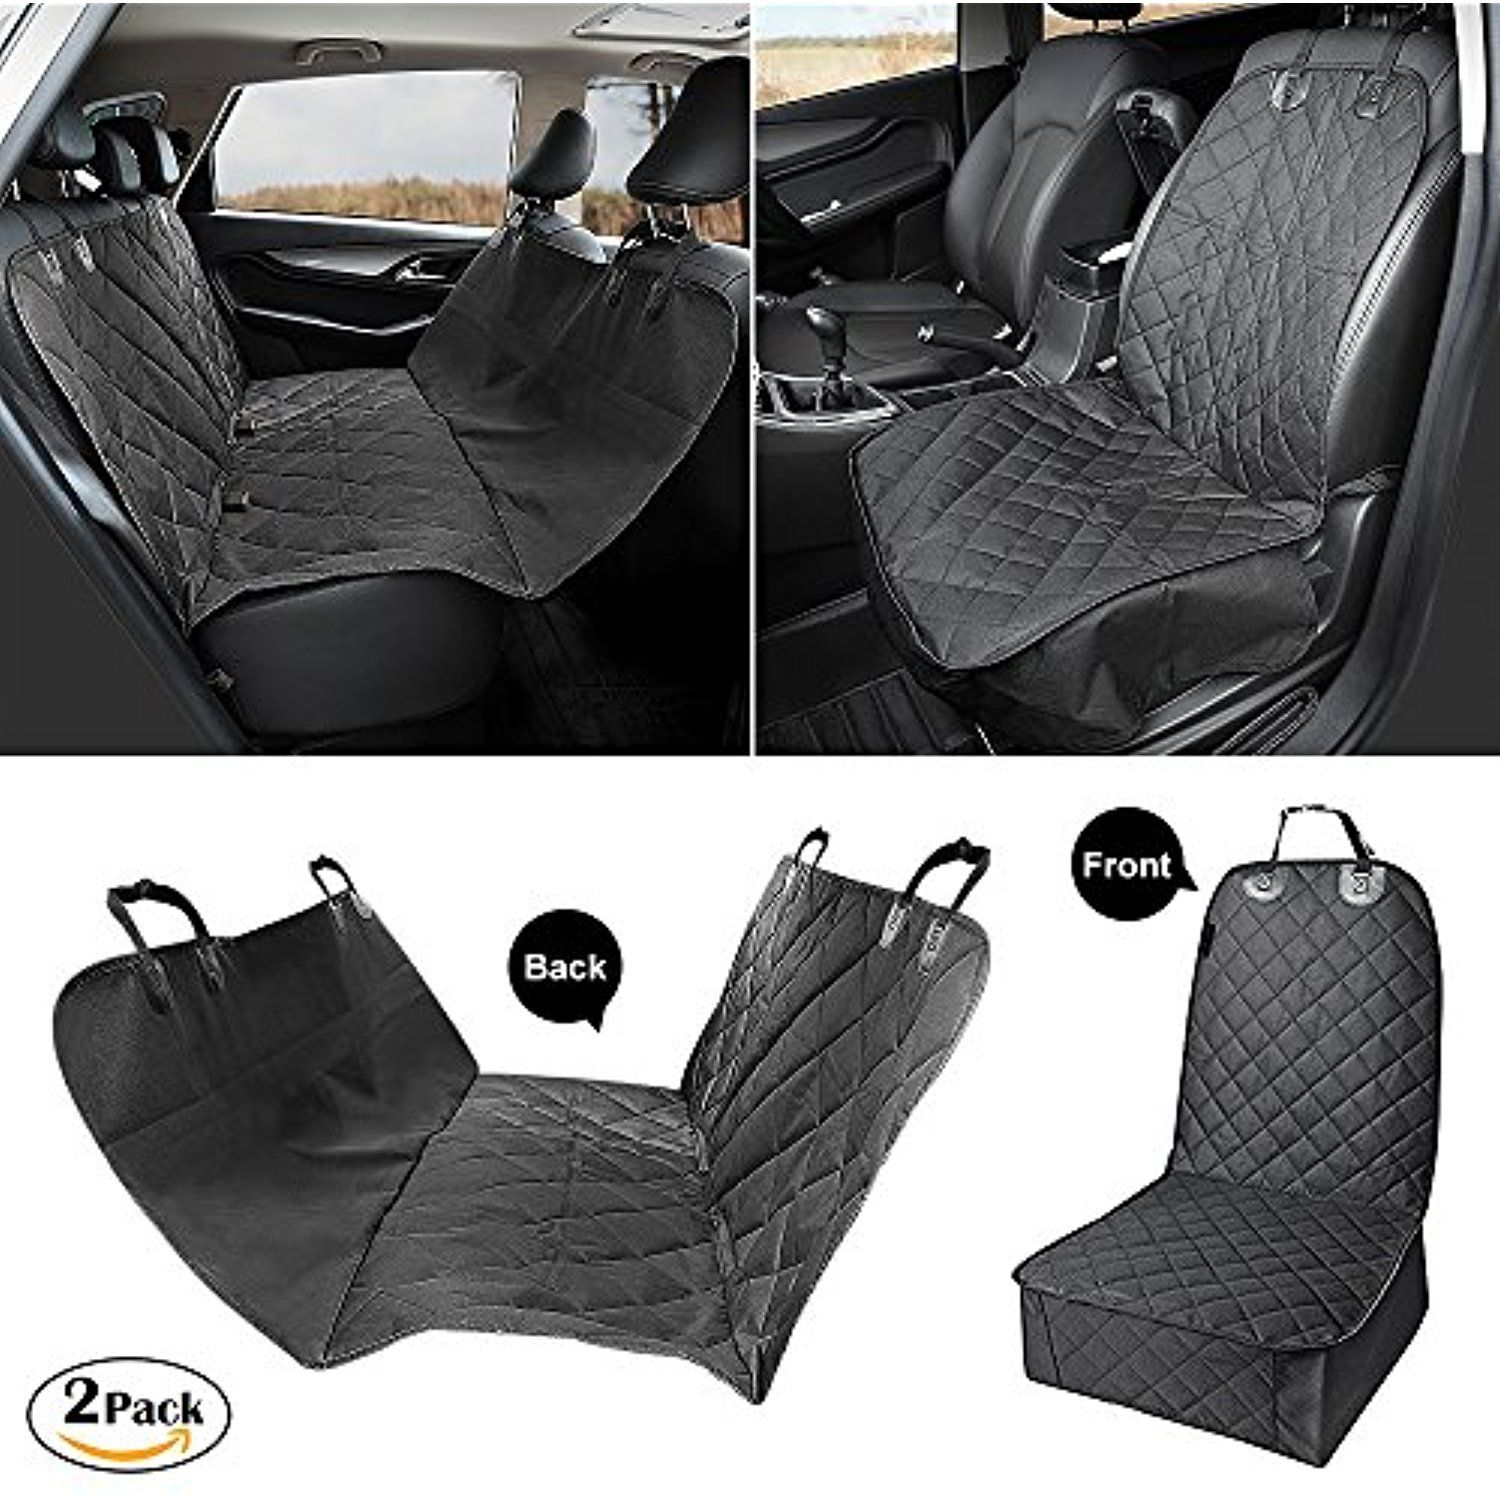 Pin On Dog Car Seat Covers